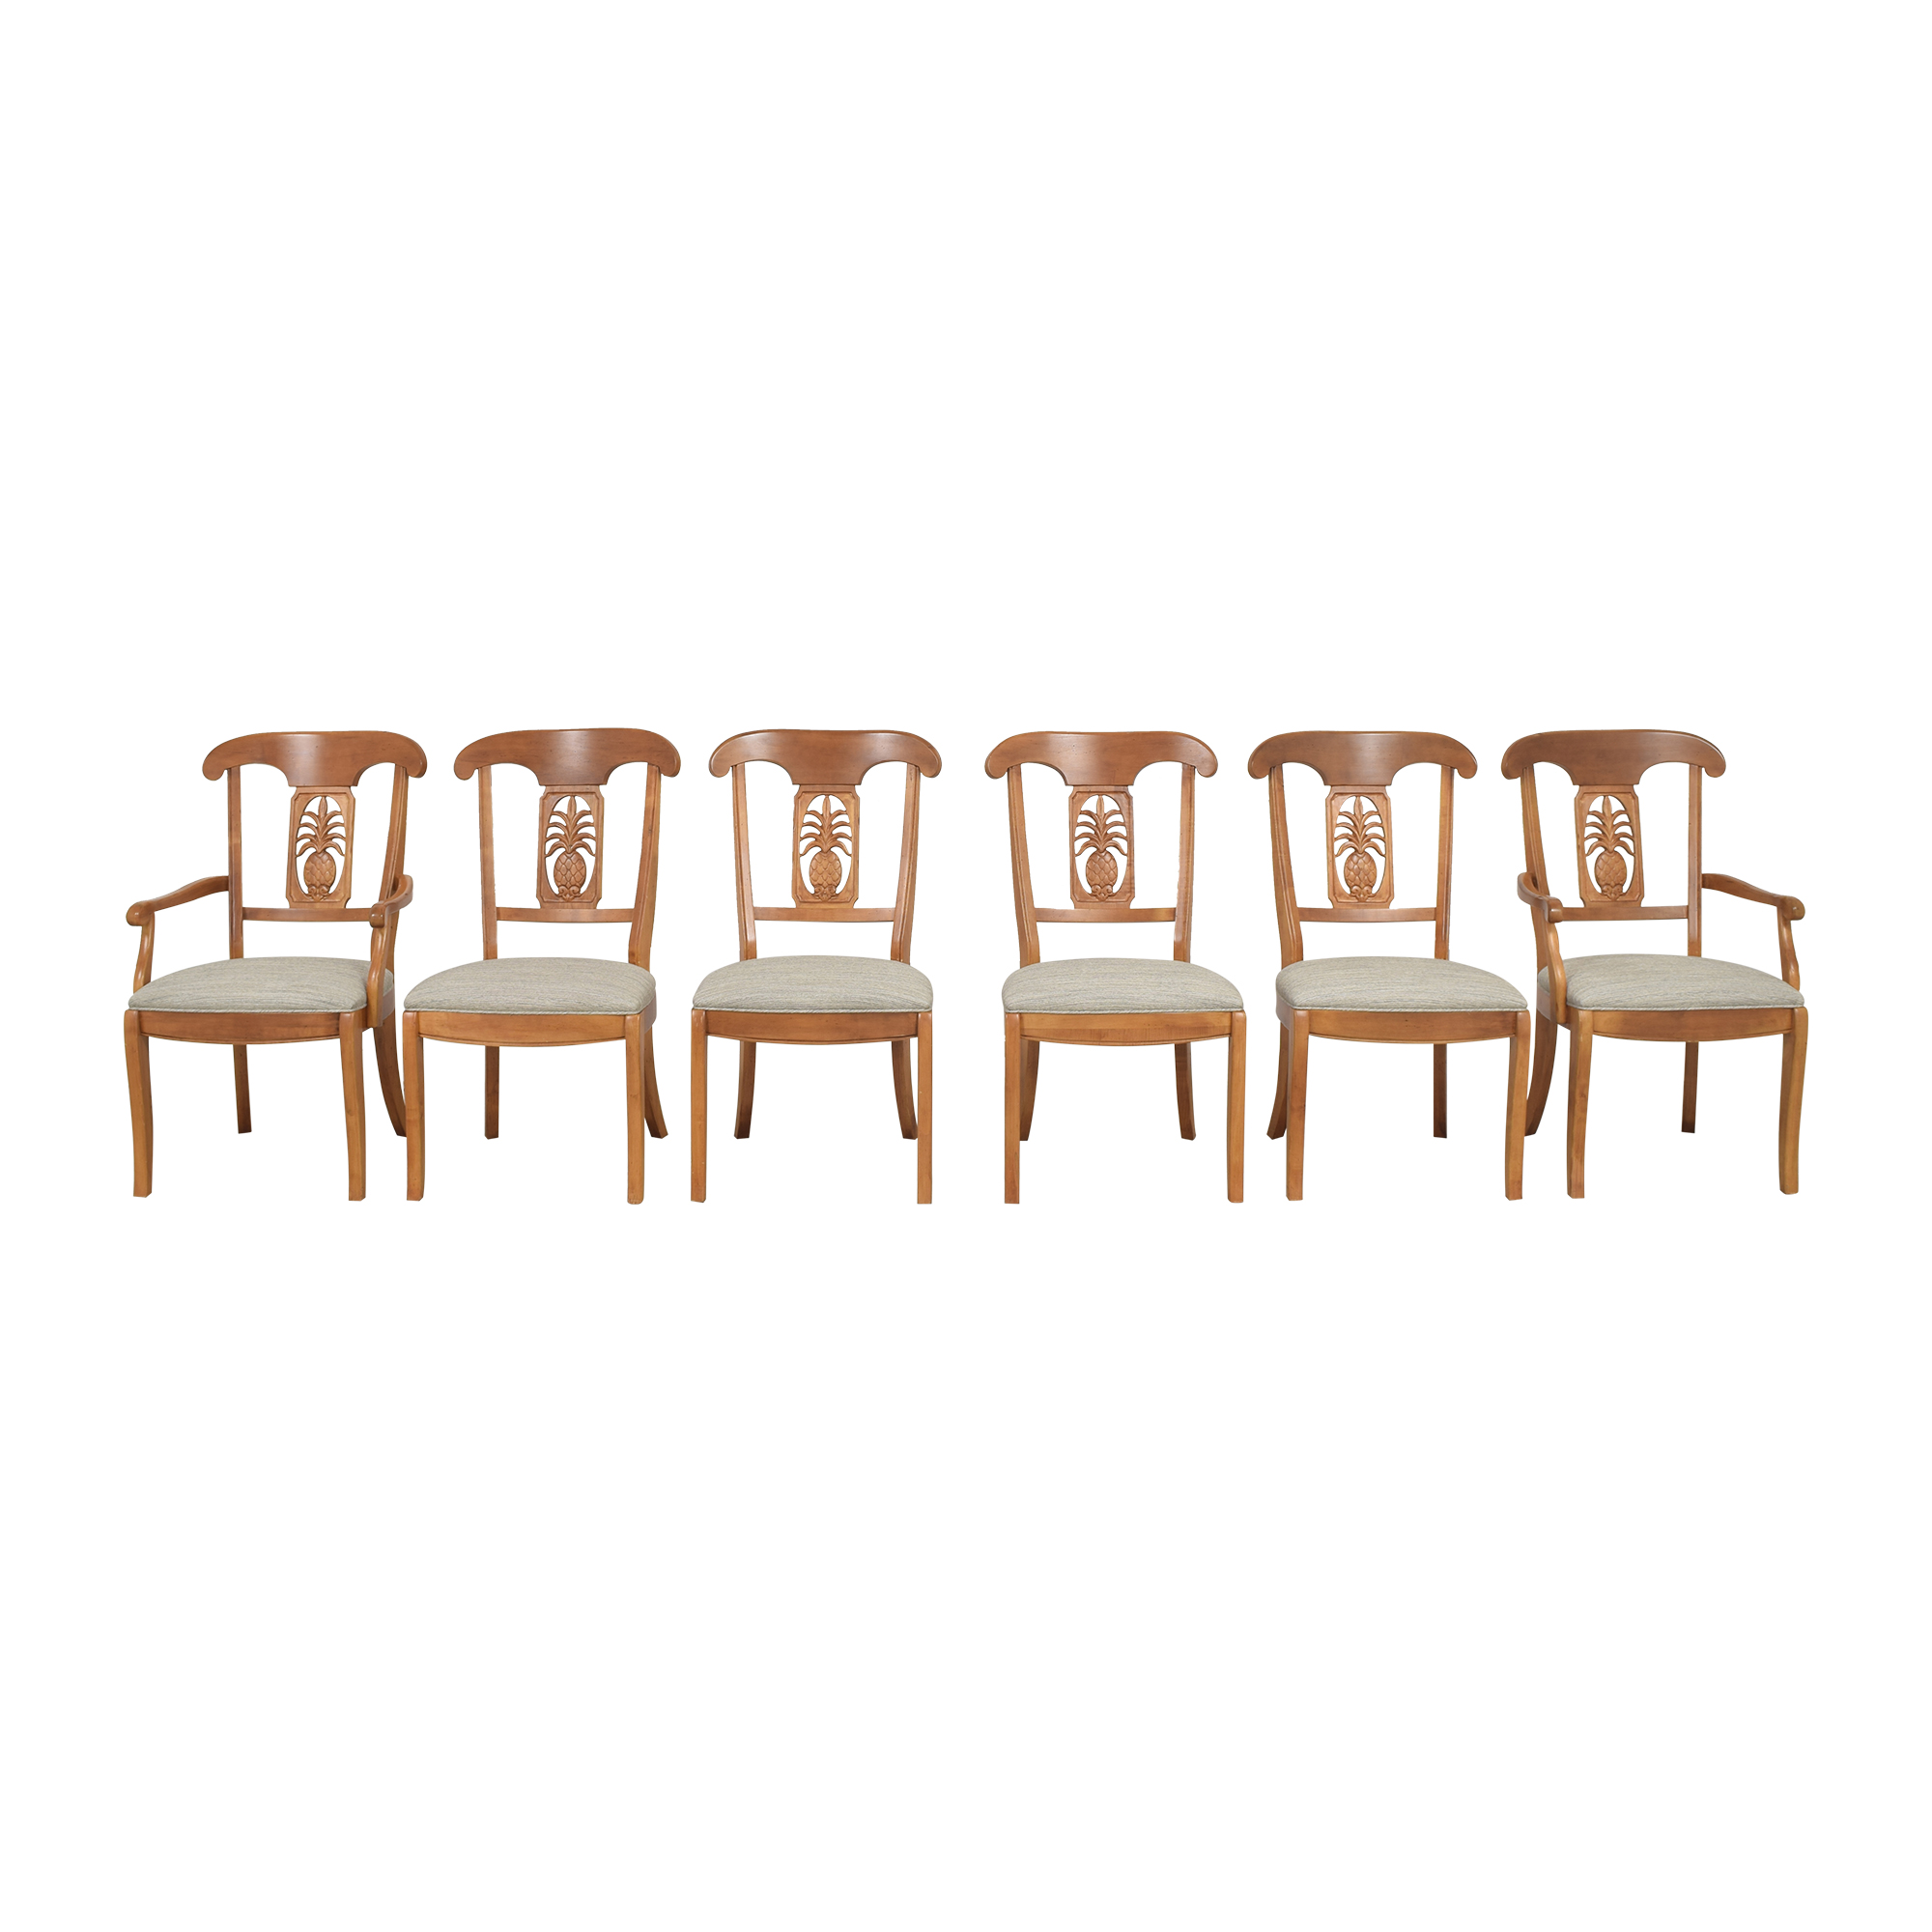 buy Ethan Allen Legacy Collection Dining Chairs Ethan Allen Dining Chairs